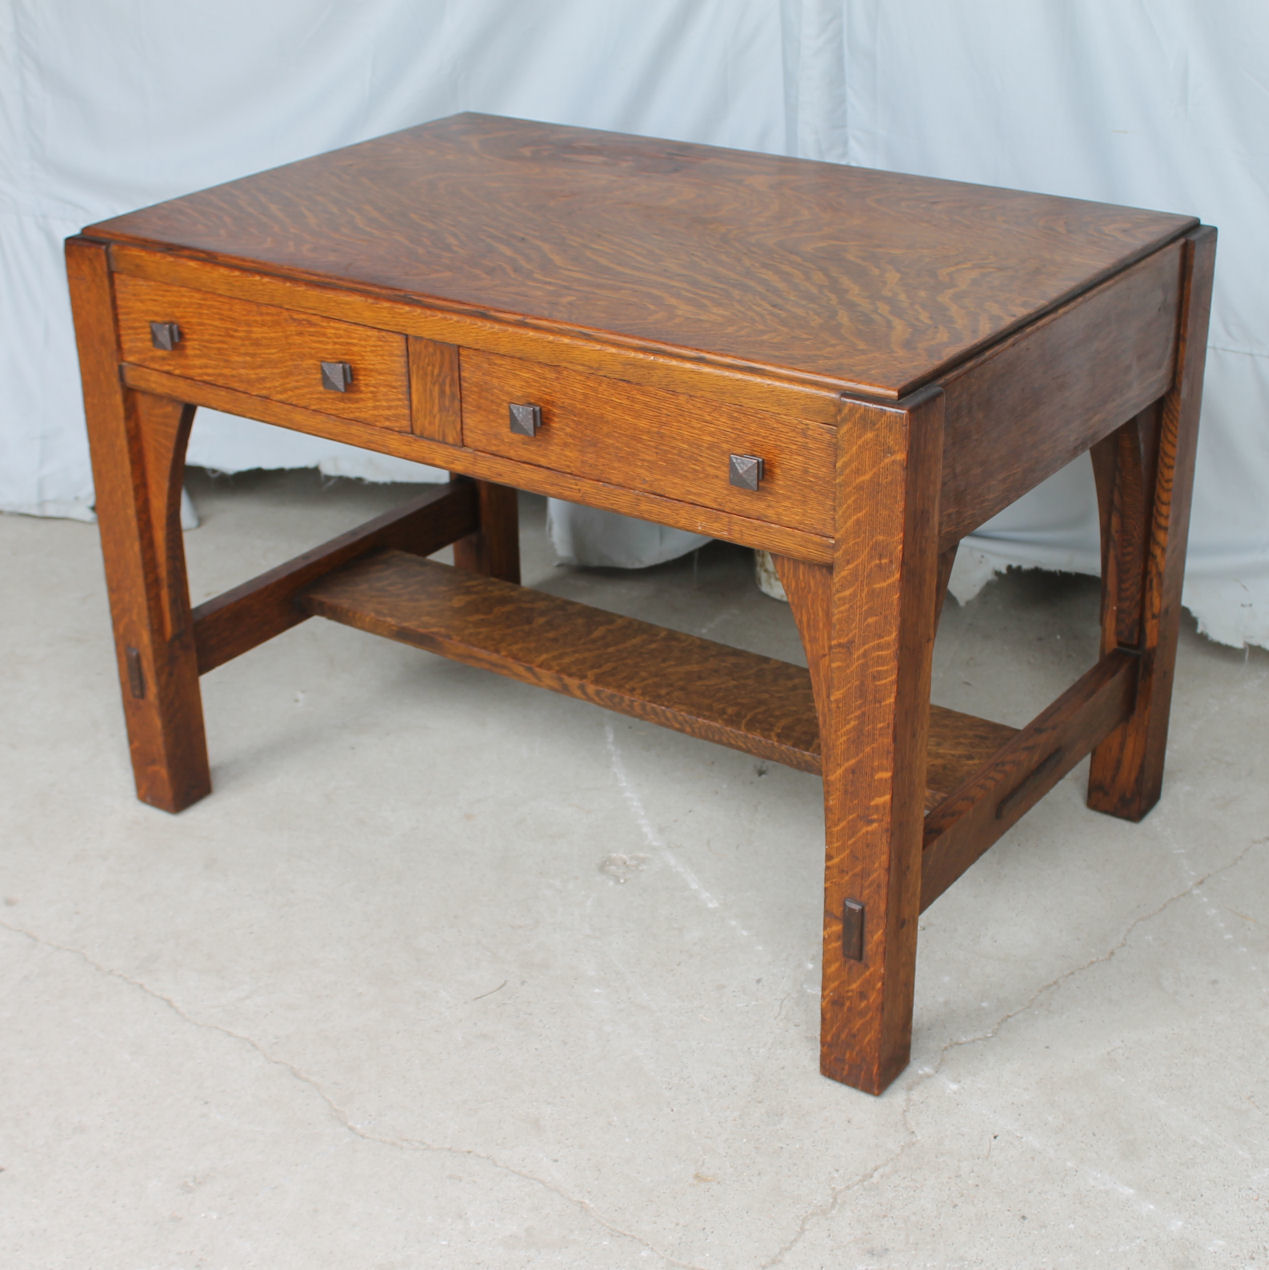 Amazing Mission Oak Library Table Desk Made By Limbert Download Free Architecture Designs Scobabritishbridgeorg